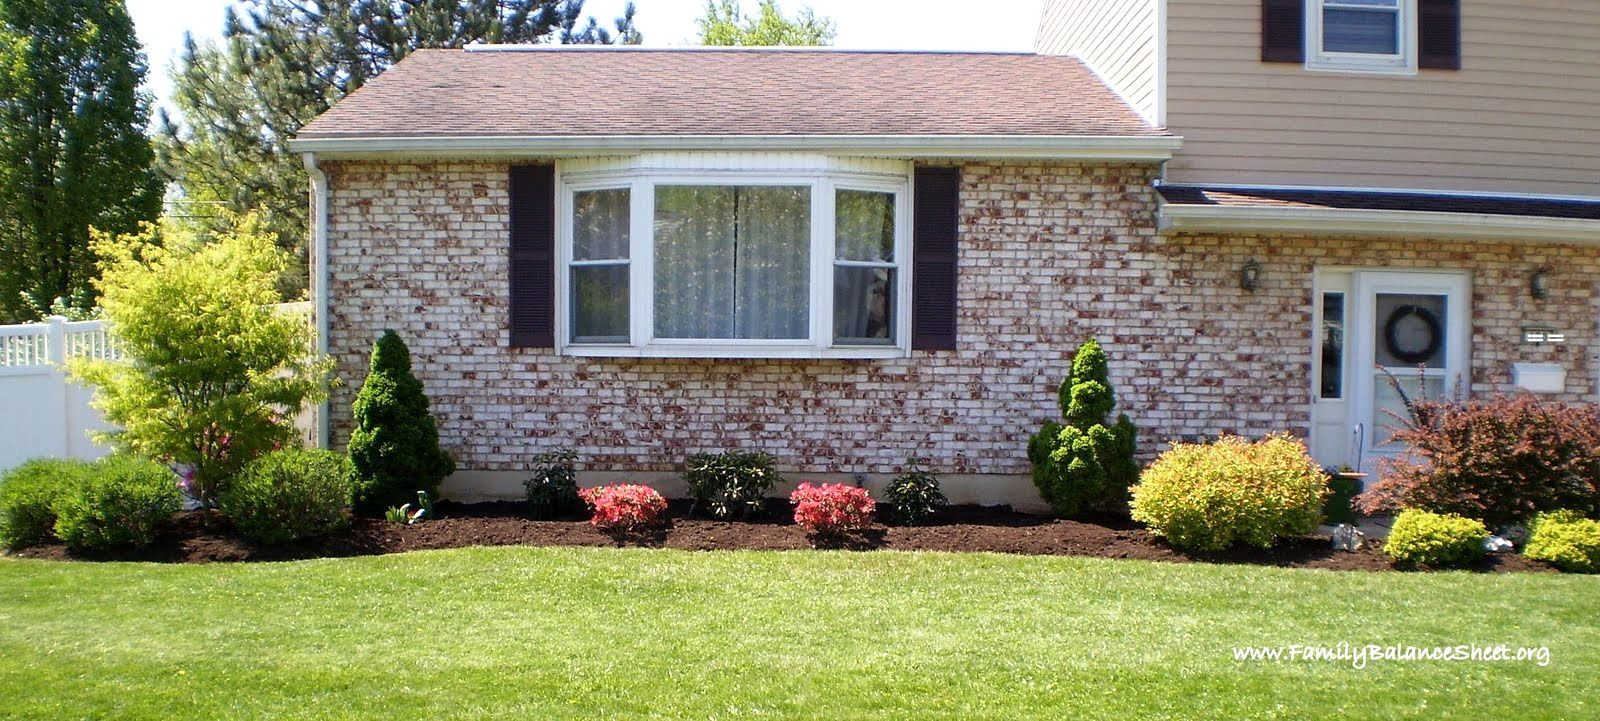 Simple landscaping ideas for ranch style home www for Basic landscaping